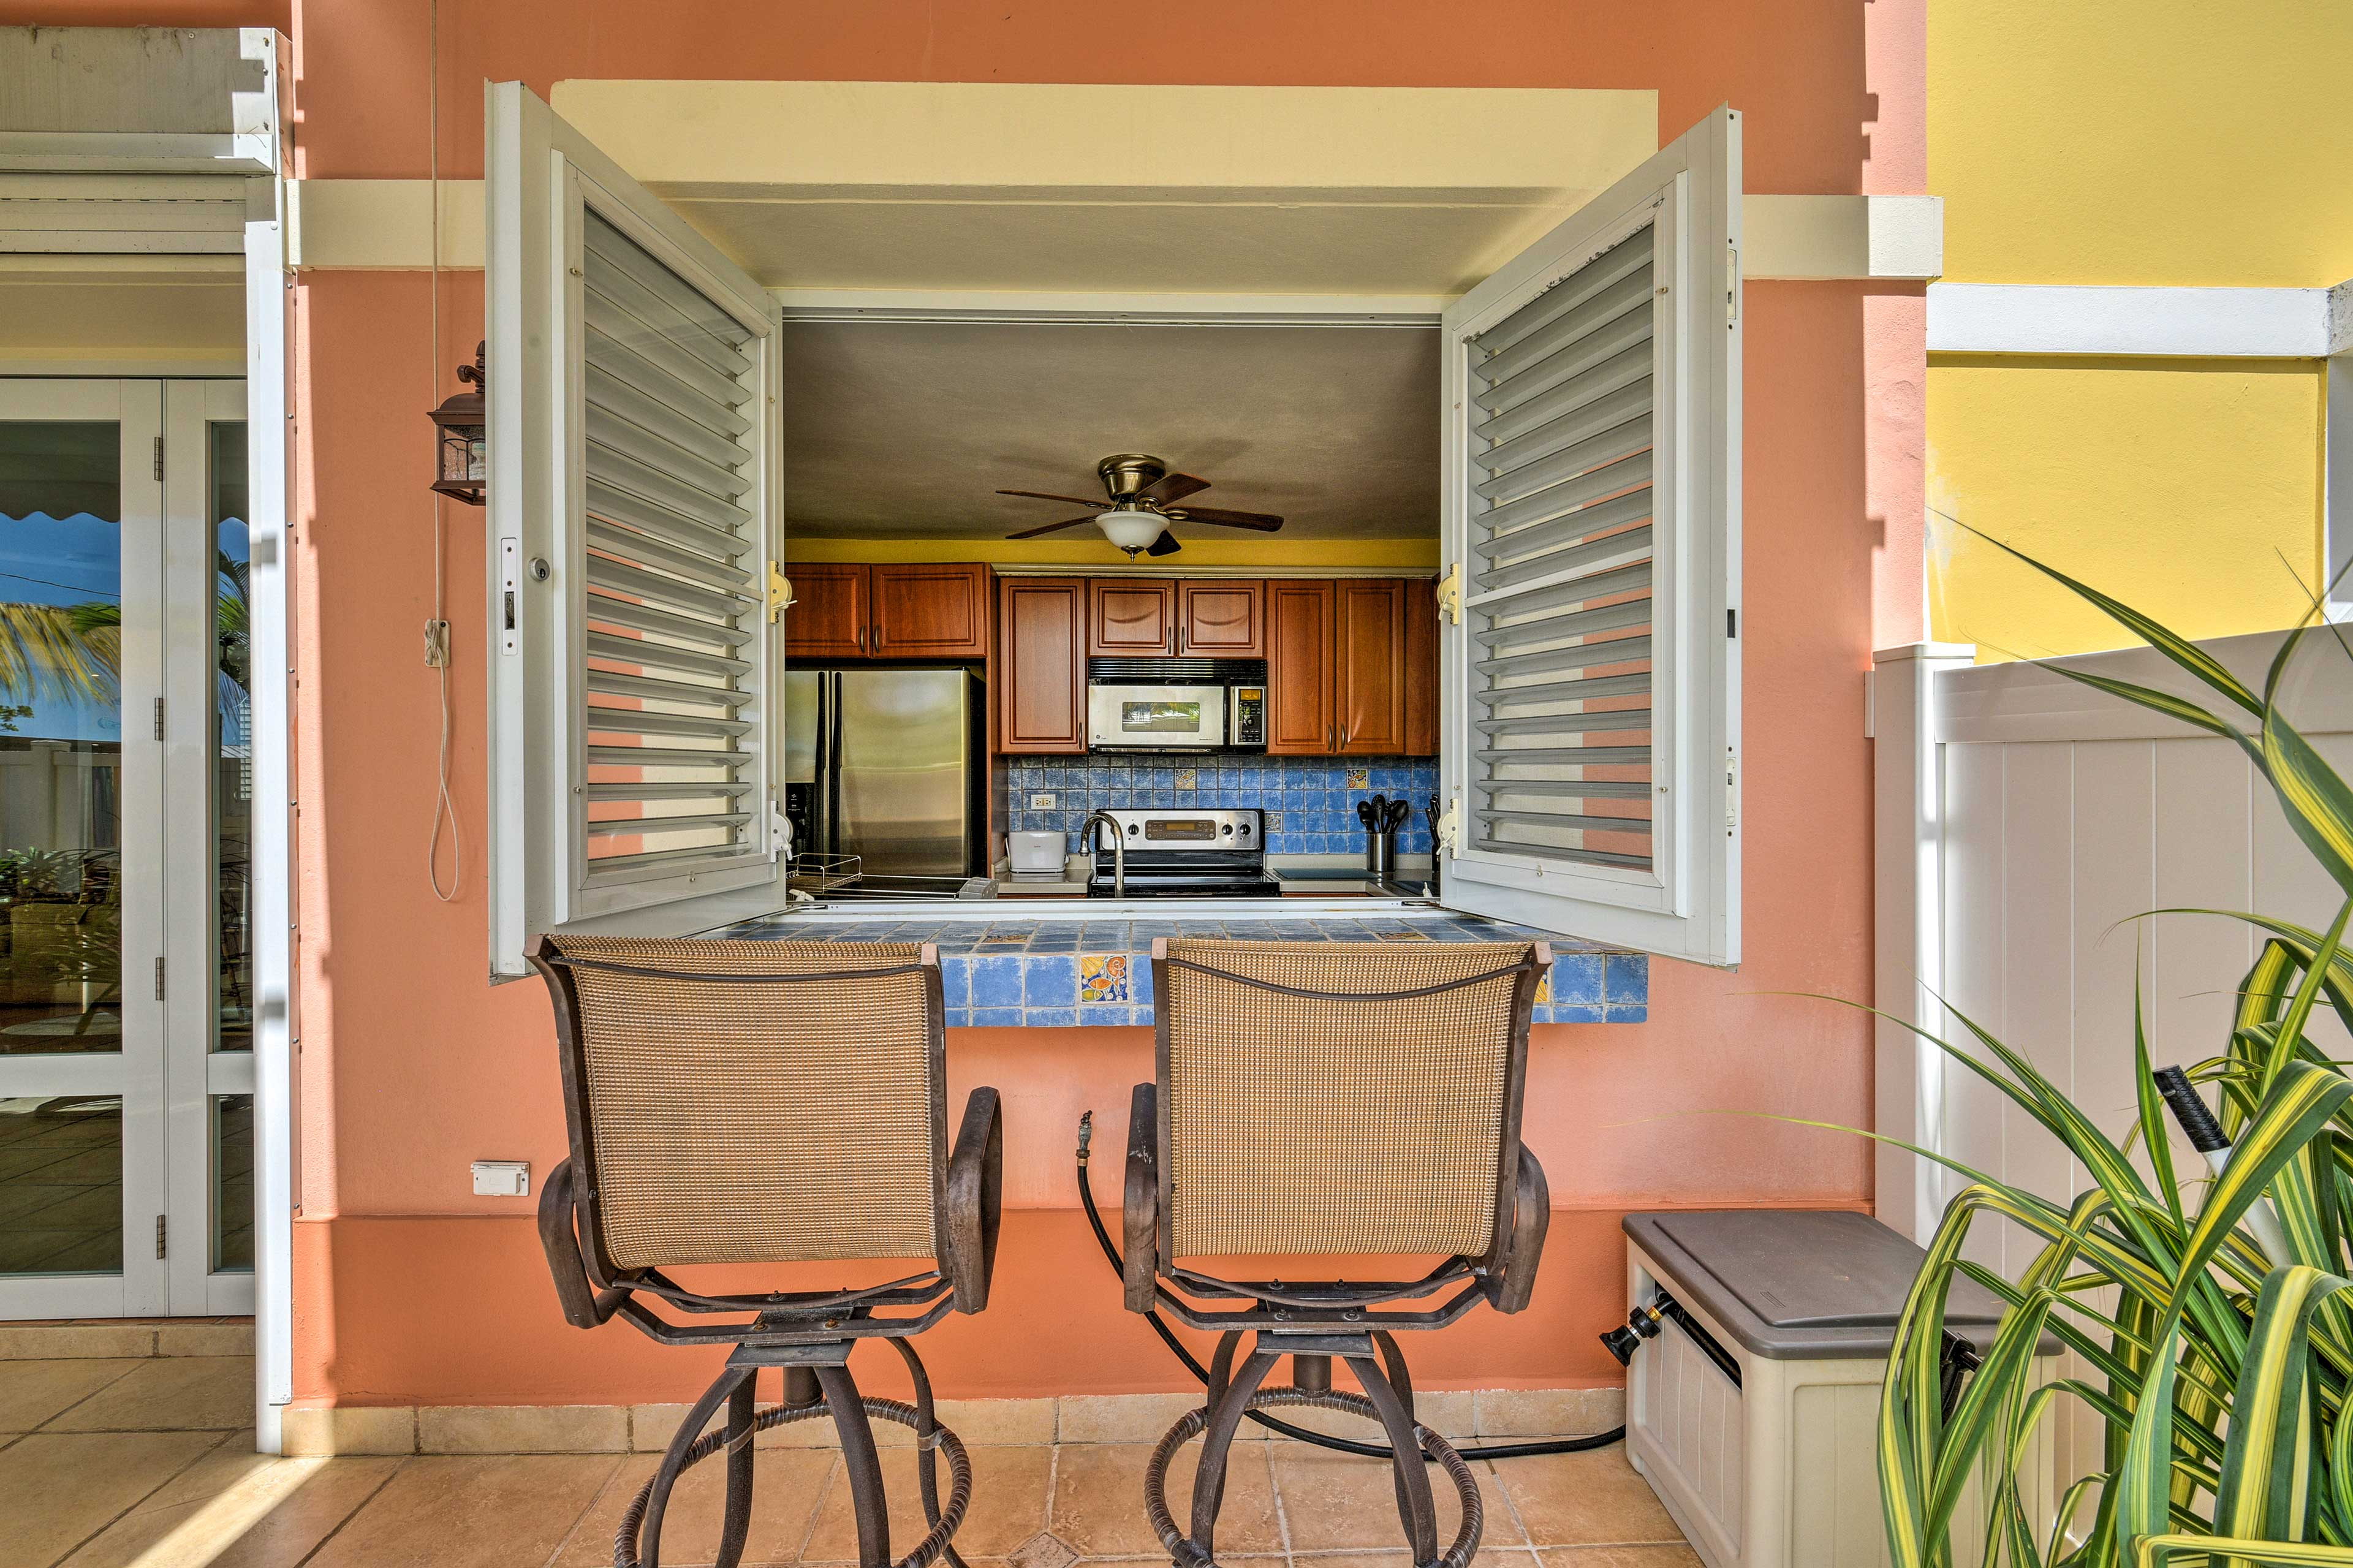 With 3 bedrooms and 2.5 bathrooms, there's plenty of room for up to 8 guests.